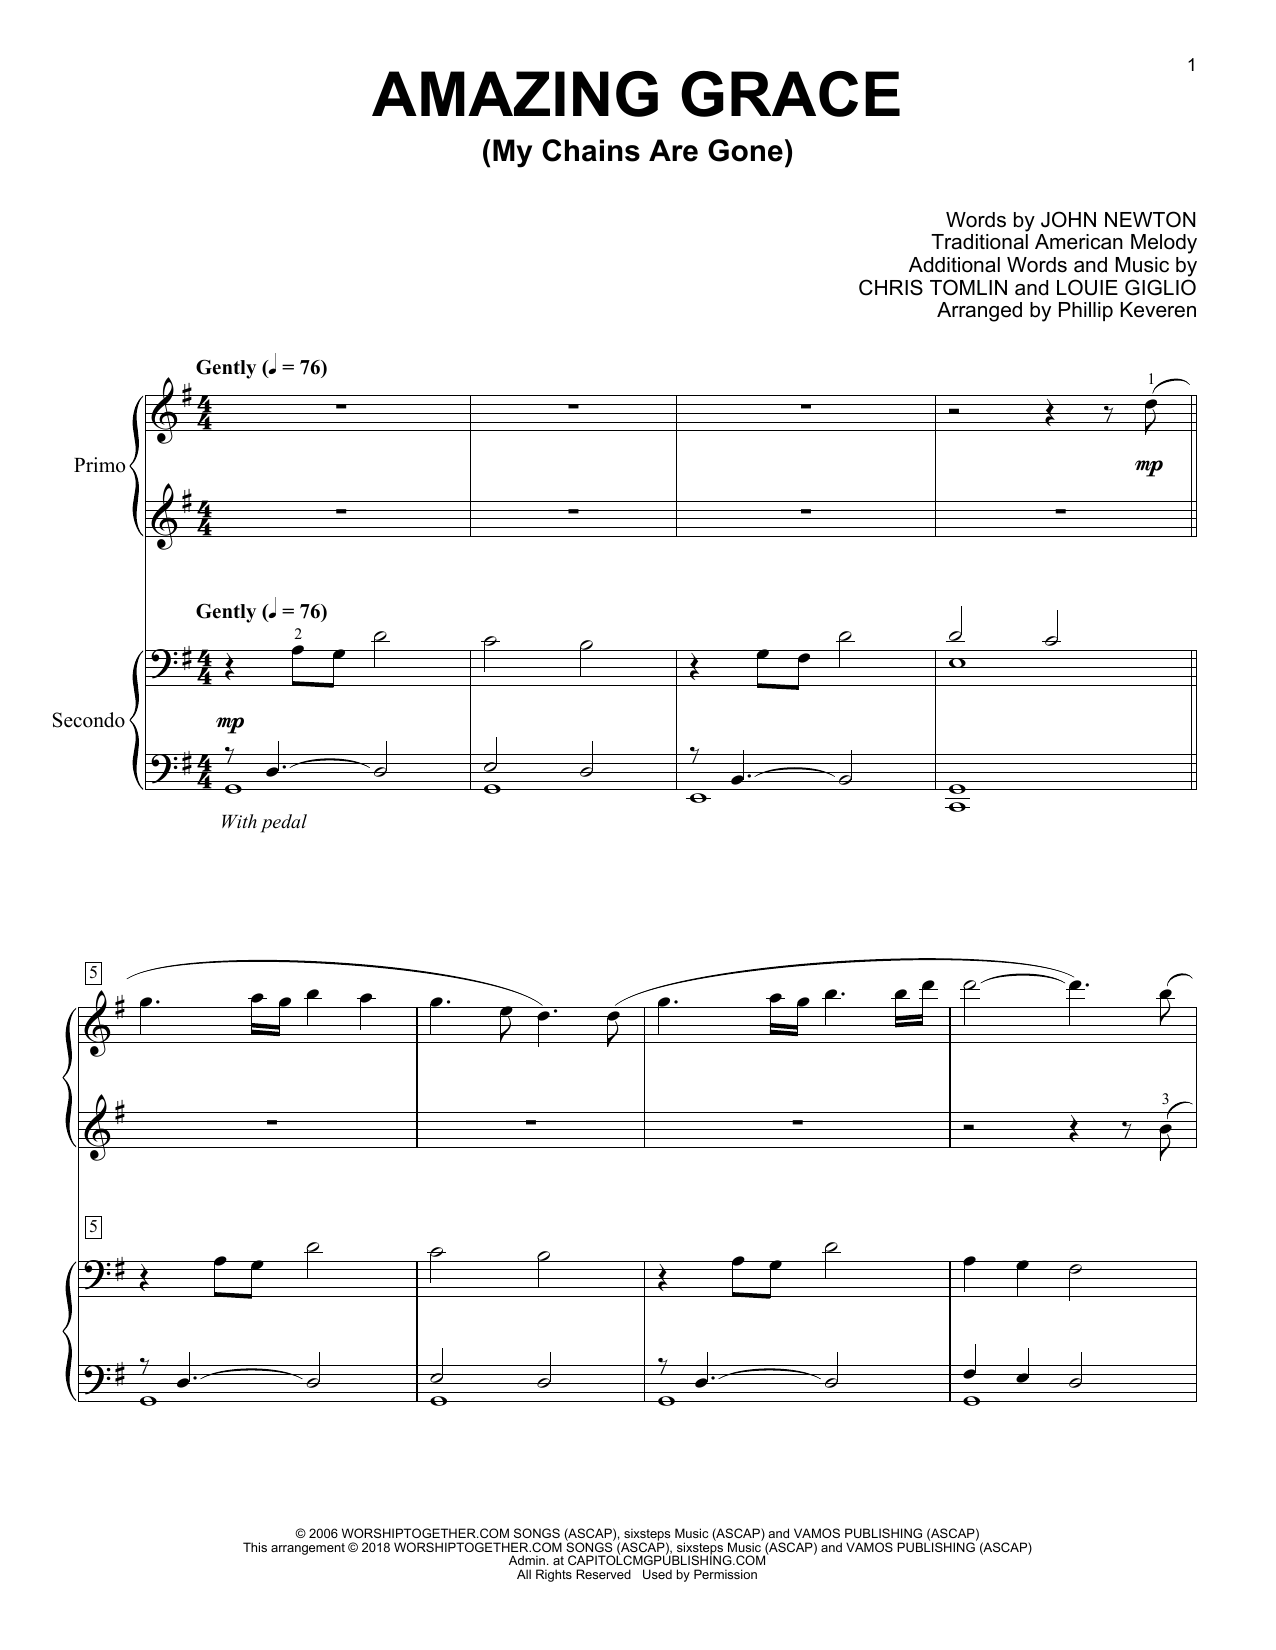 Amazing Grace My Chains Are Gone Print Sheet Music Now